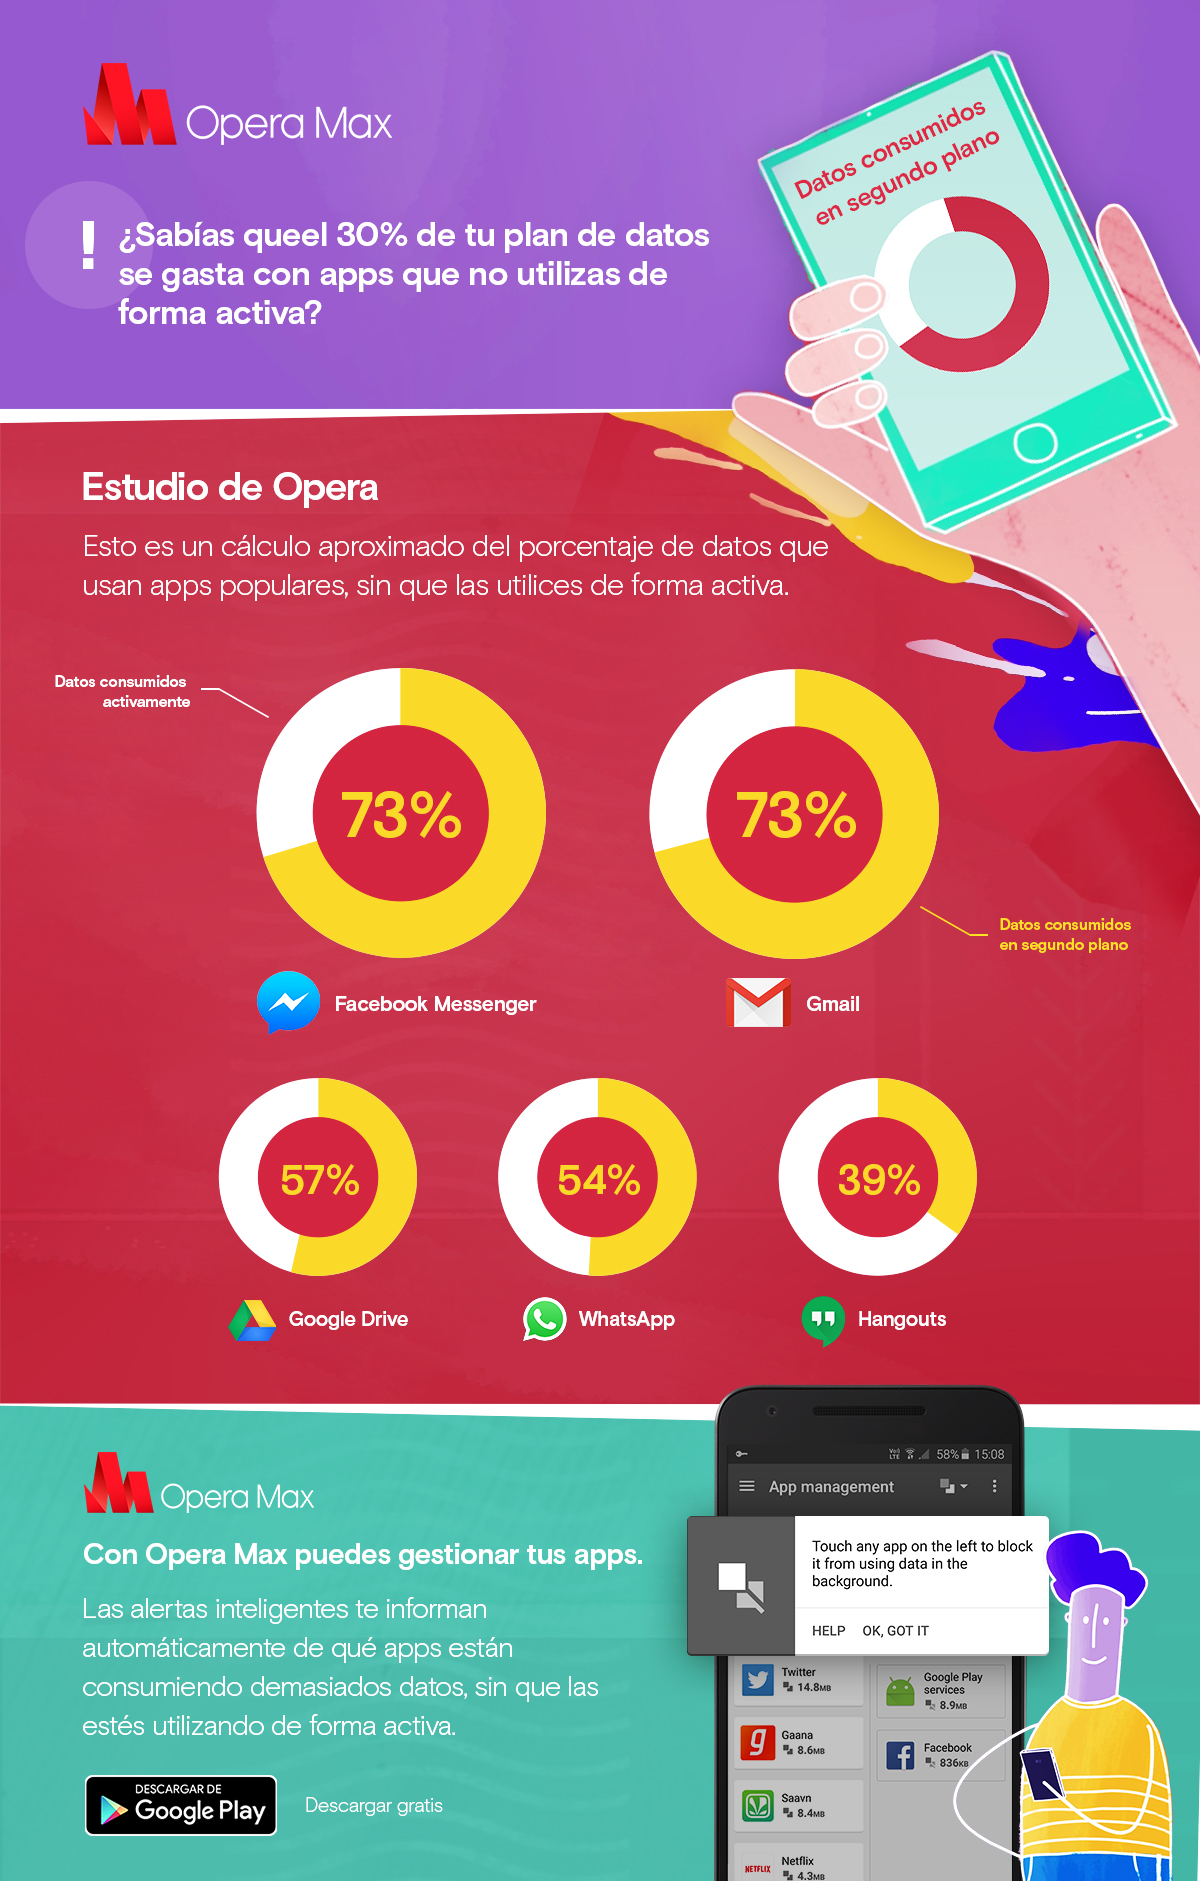 opera-max-background-data-infographic-SPANISH